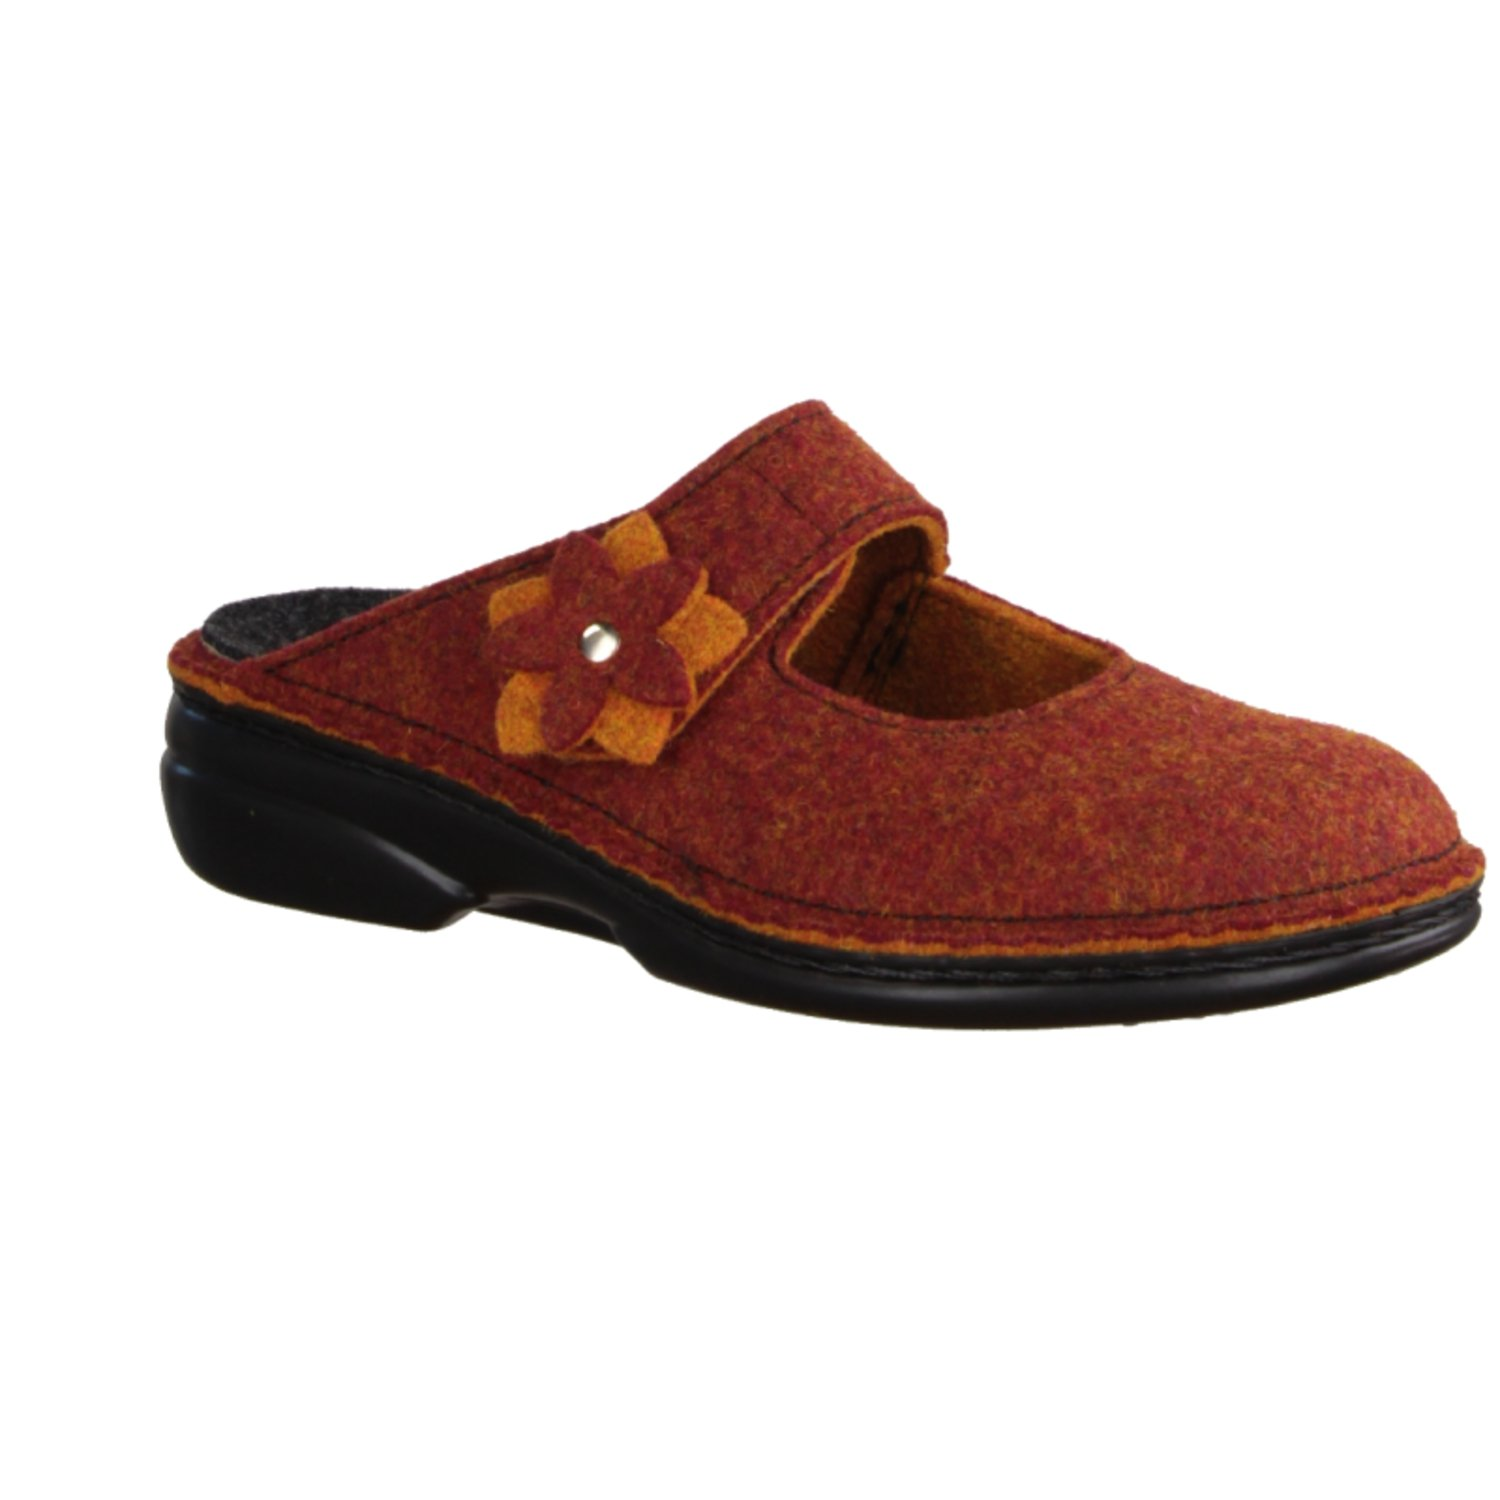 FinnComfort Pantofole Donna Rosso Rosso